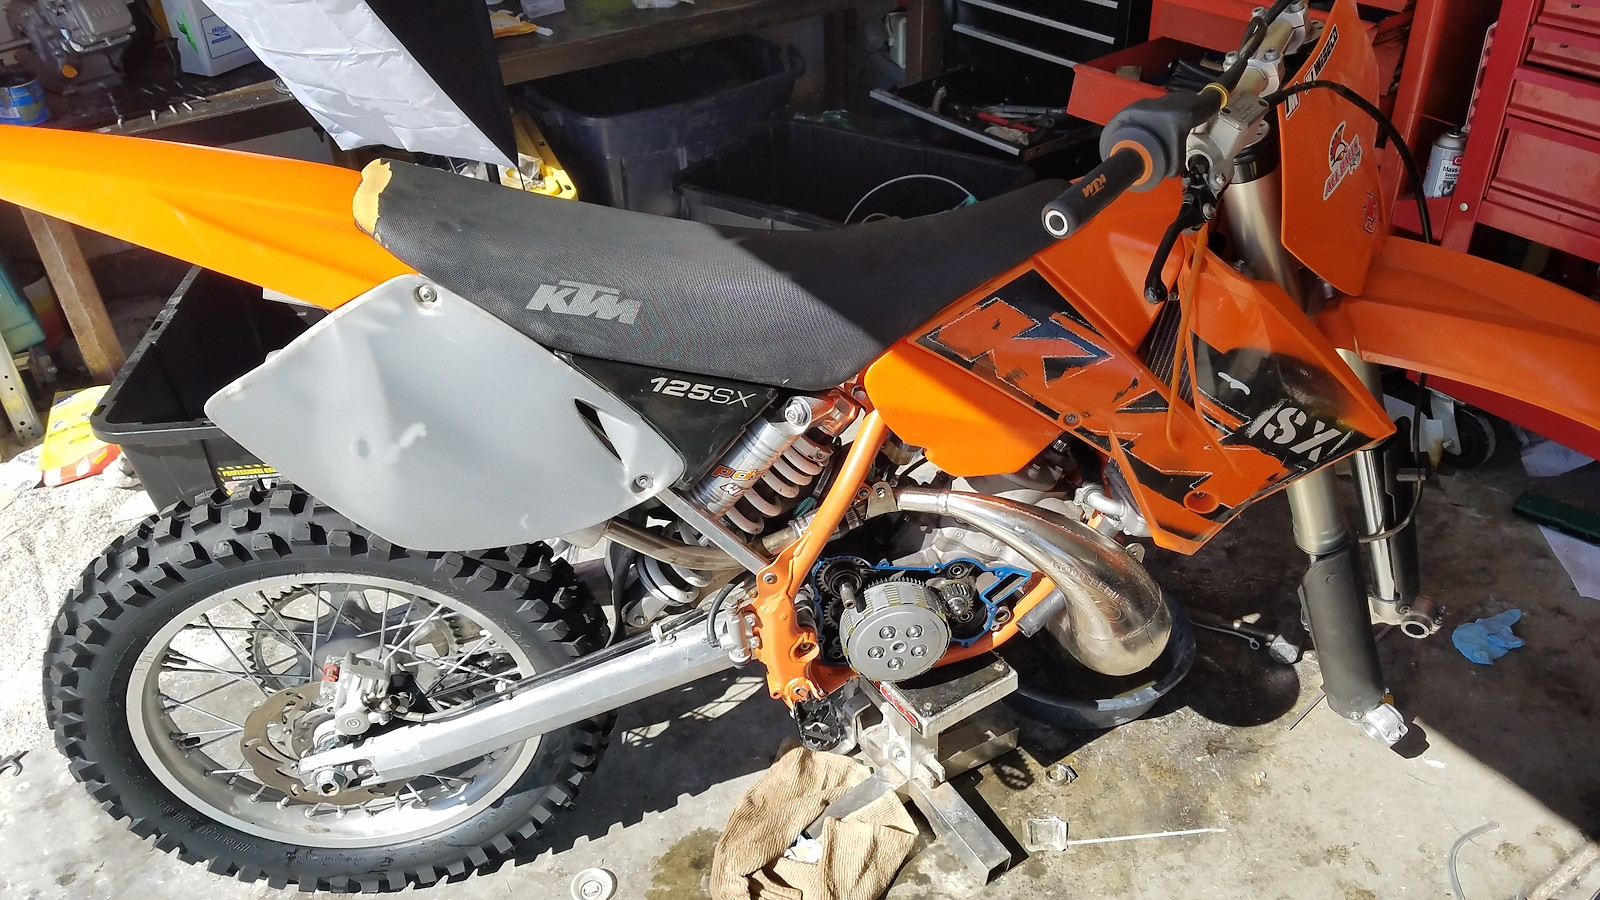 2003 Ktm 125sx 400 Craigslist Special Bike Builds Motocross 125 Sx Wiring Diagram New Skills Along The Way Next Project I Take On Will Be More Meticulous With Have A Kdx200 And Crf250r That Picked Up For About